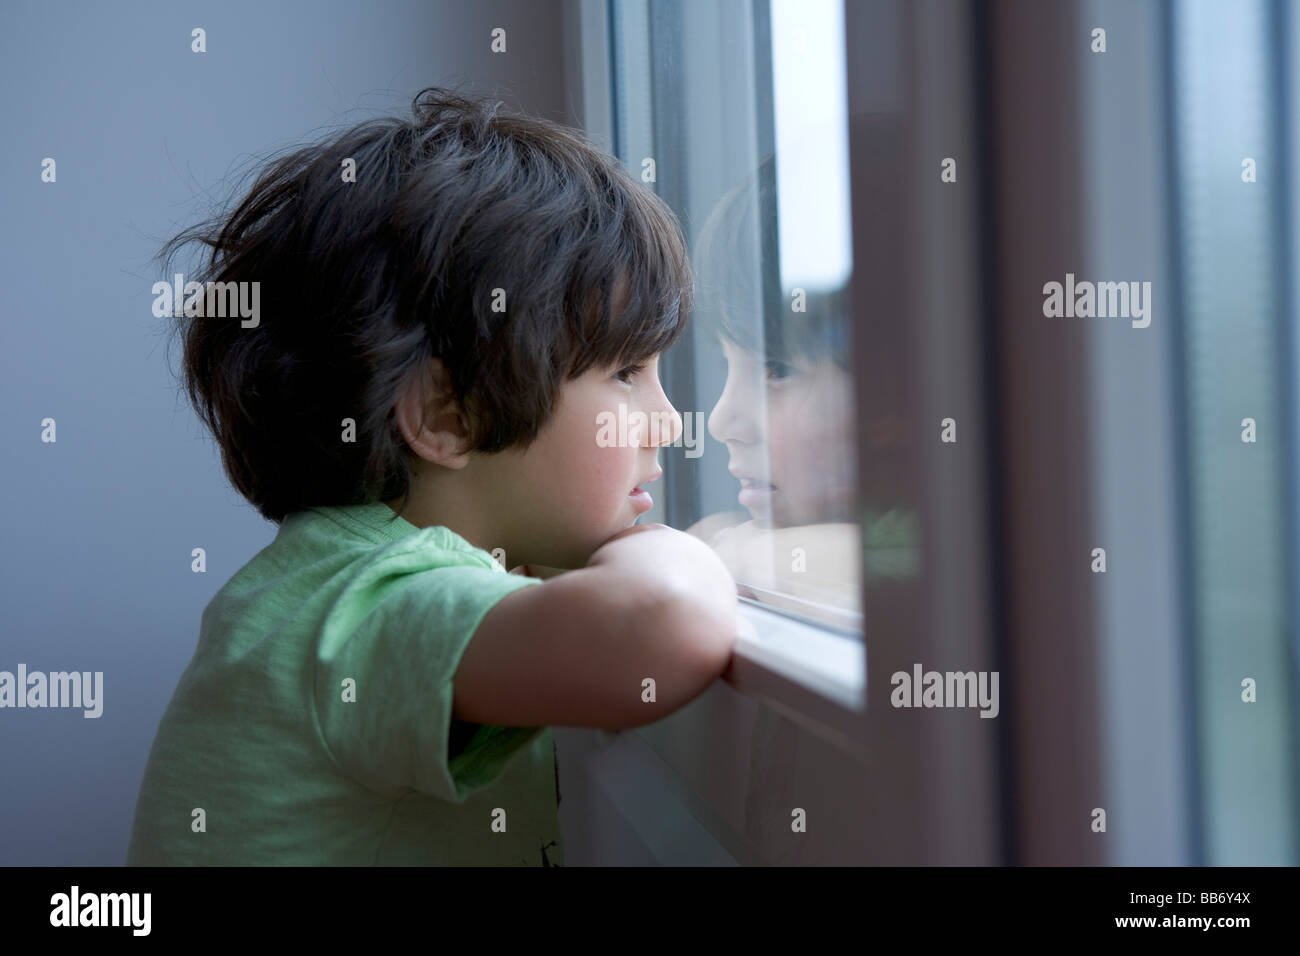 Lonely little boy looking out of the window - Stock Image